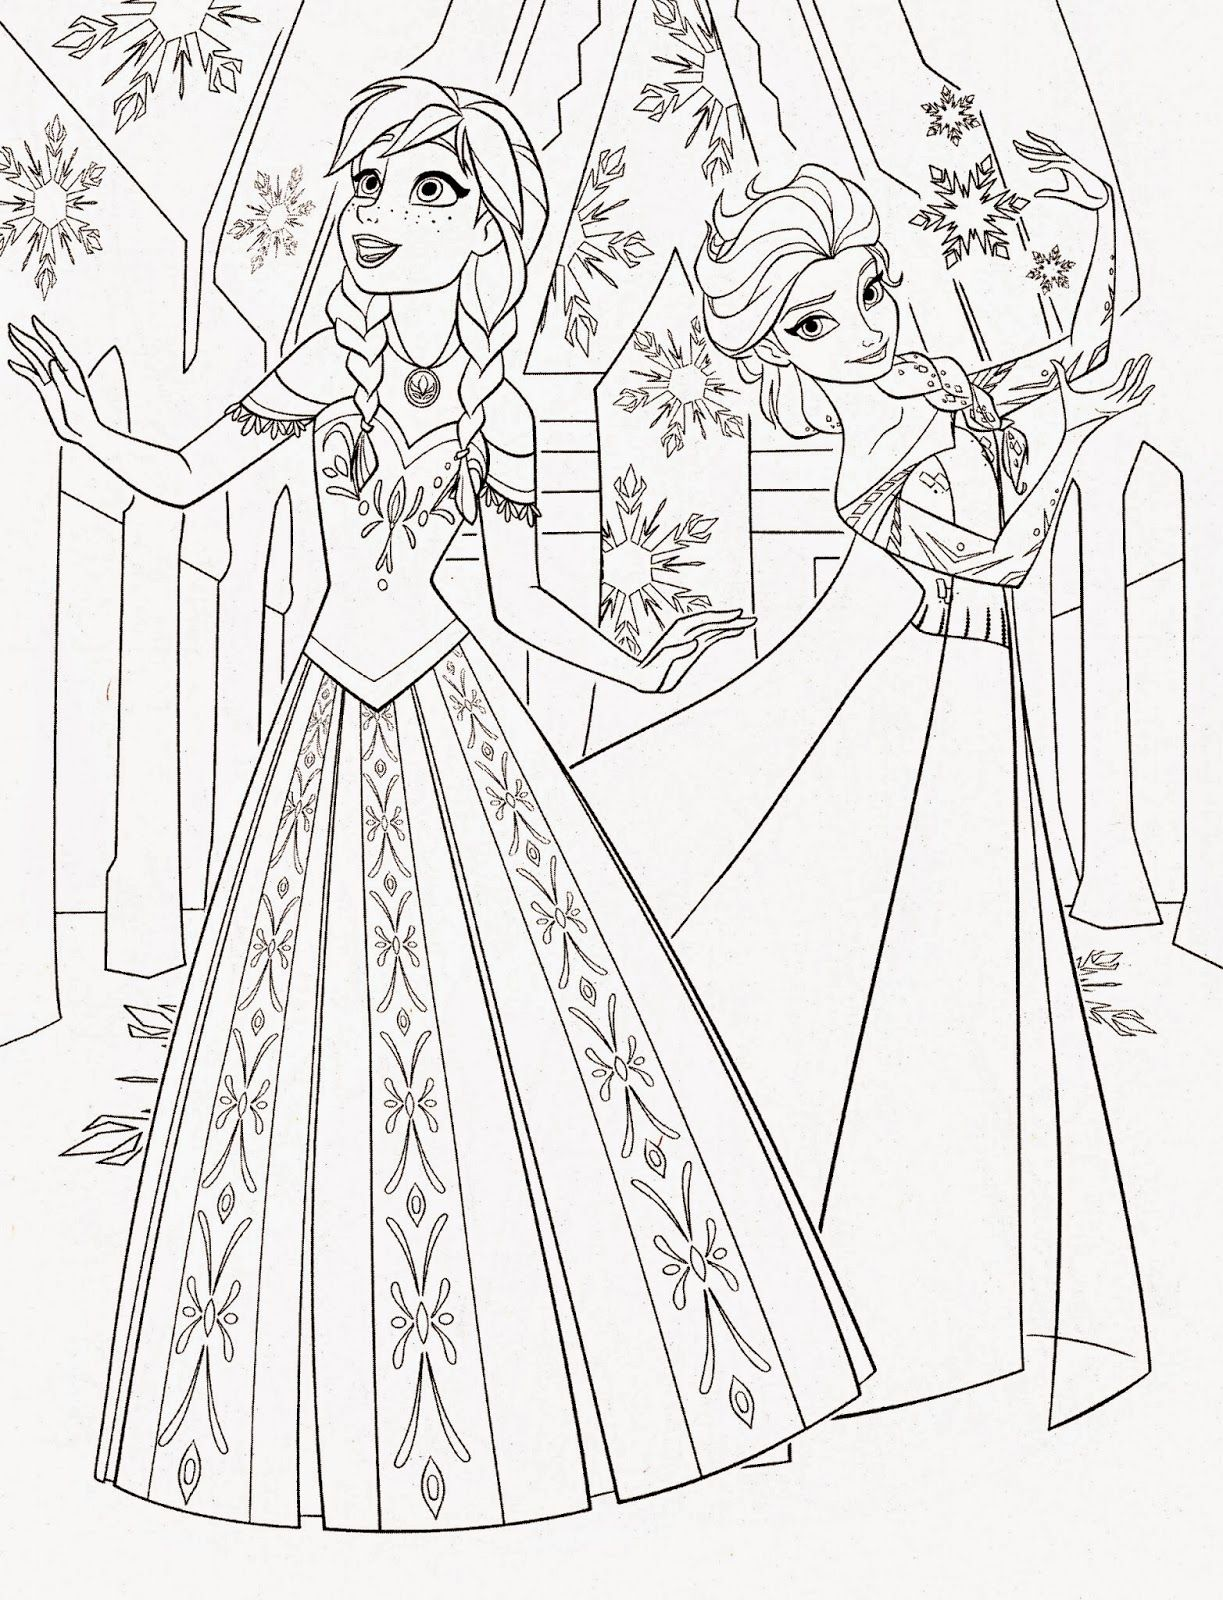 Disney Princess Frozen Elsa and Anna Coloring Pages | Recreational ...